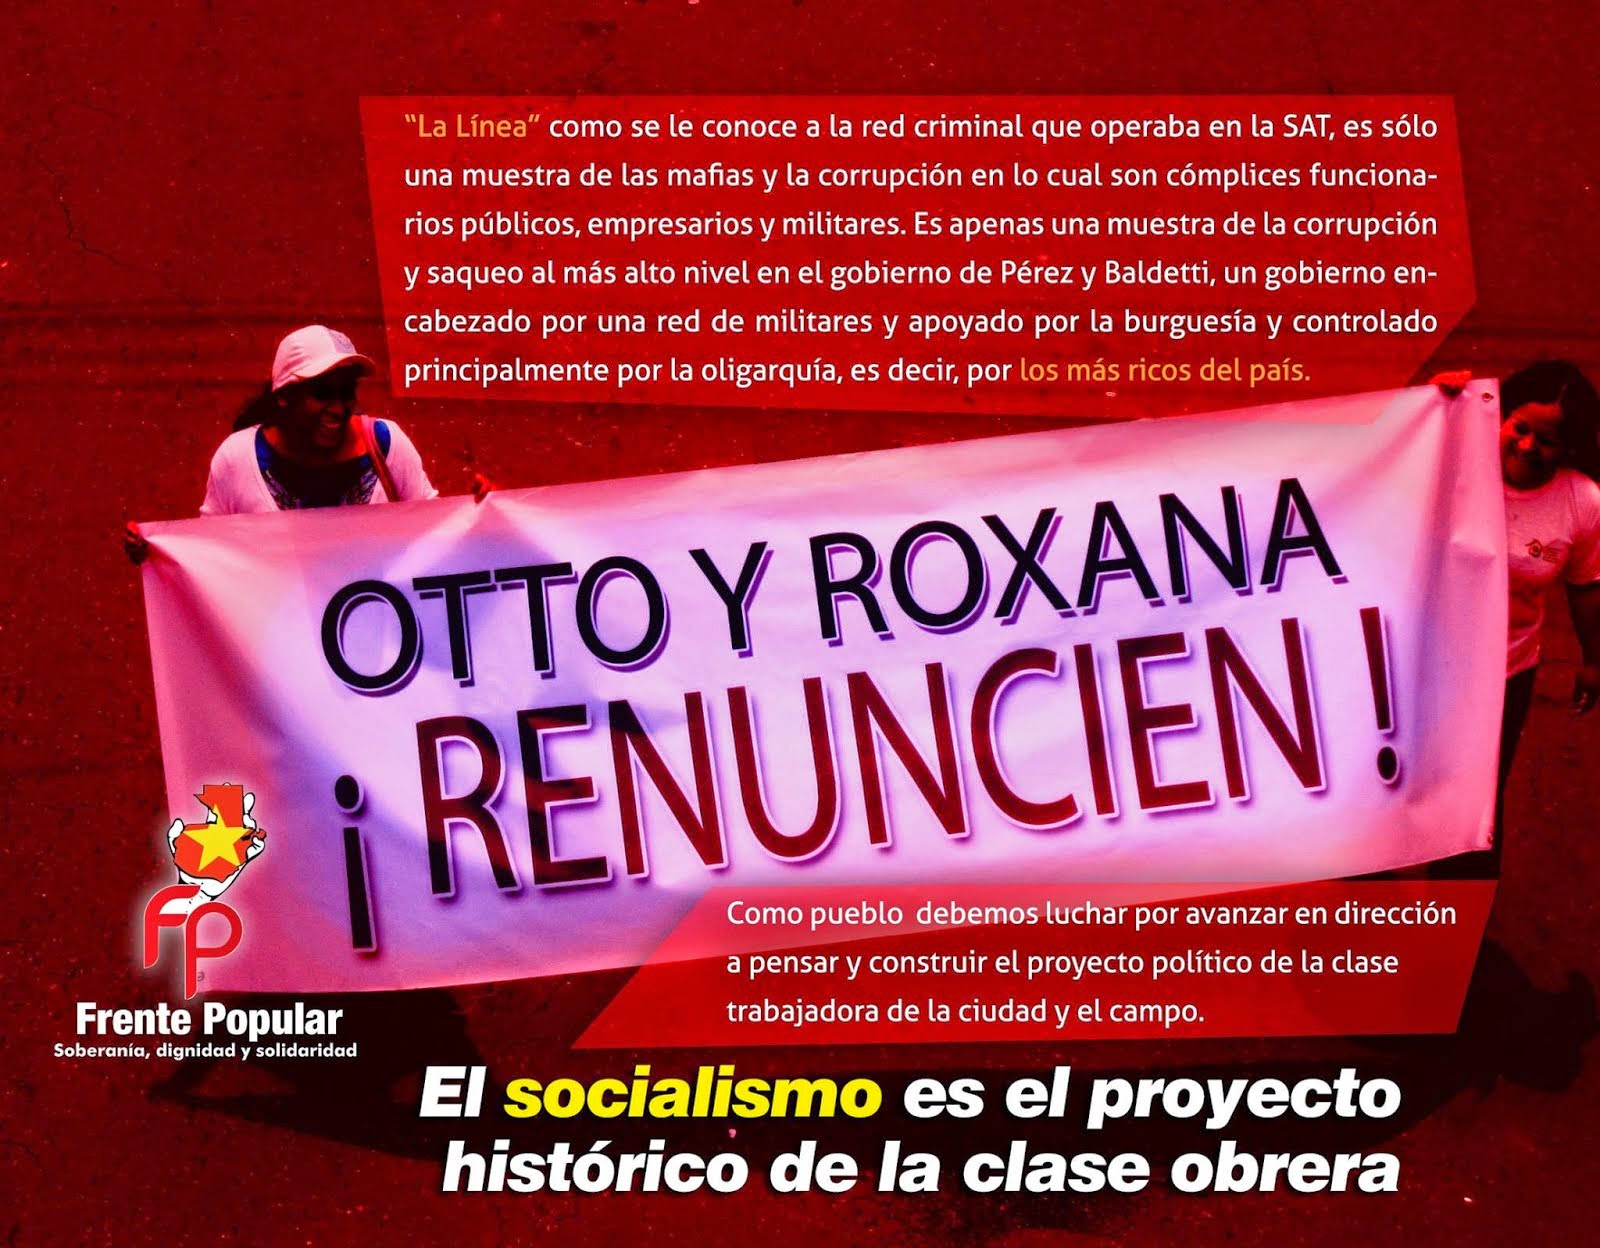 ¡OTTO Y ROXANA: RENUNCIEN!